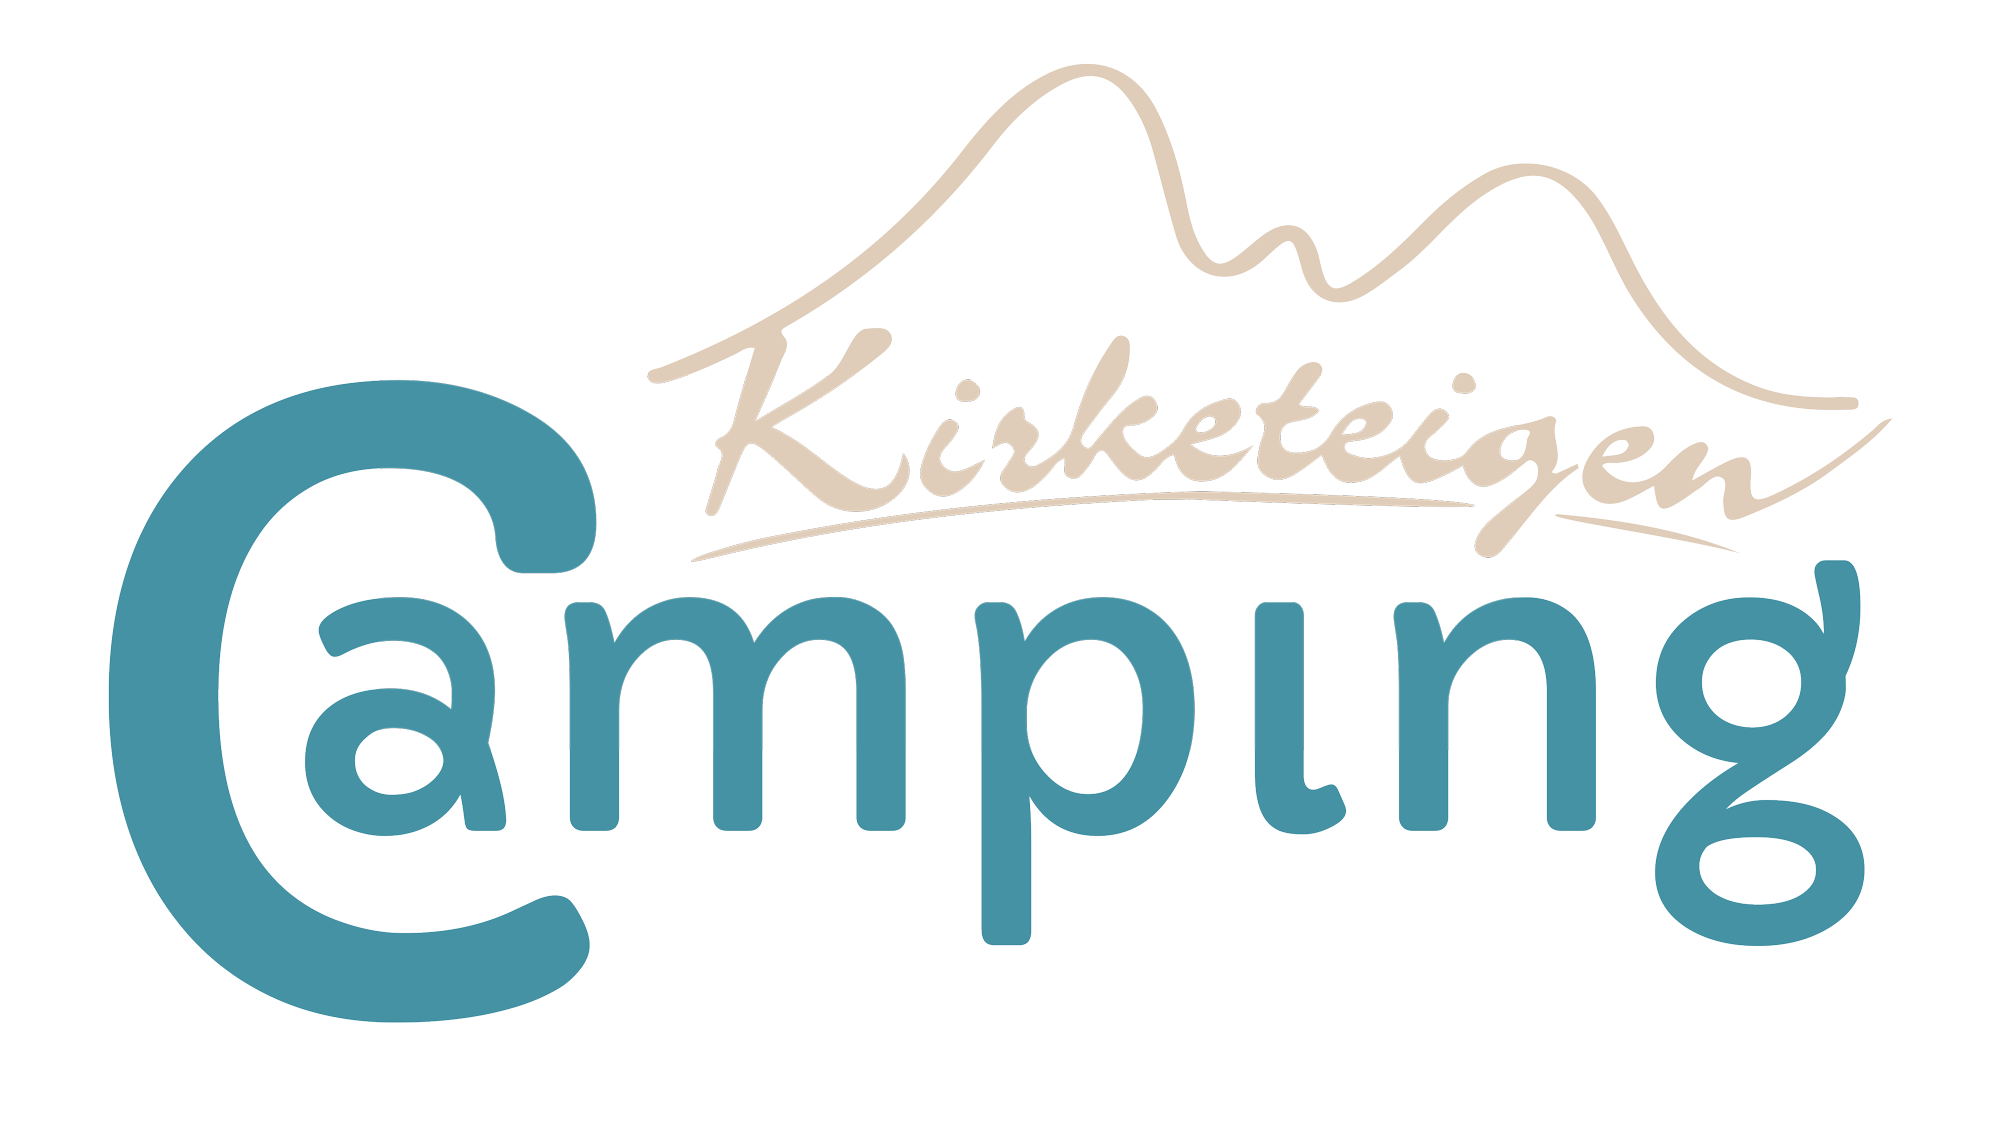 Kirketeigen-camping-logo-for-web-03